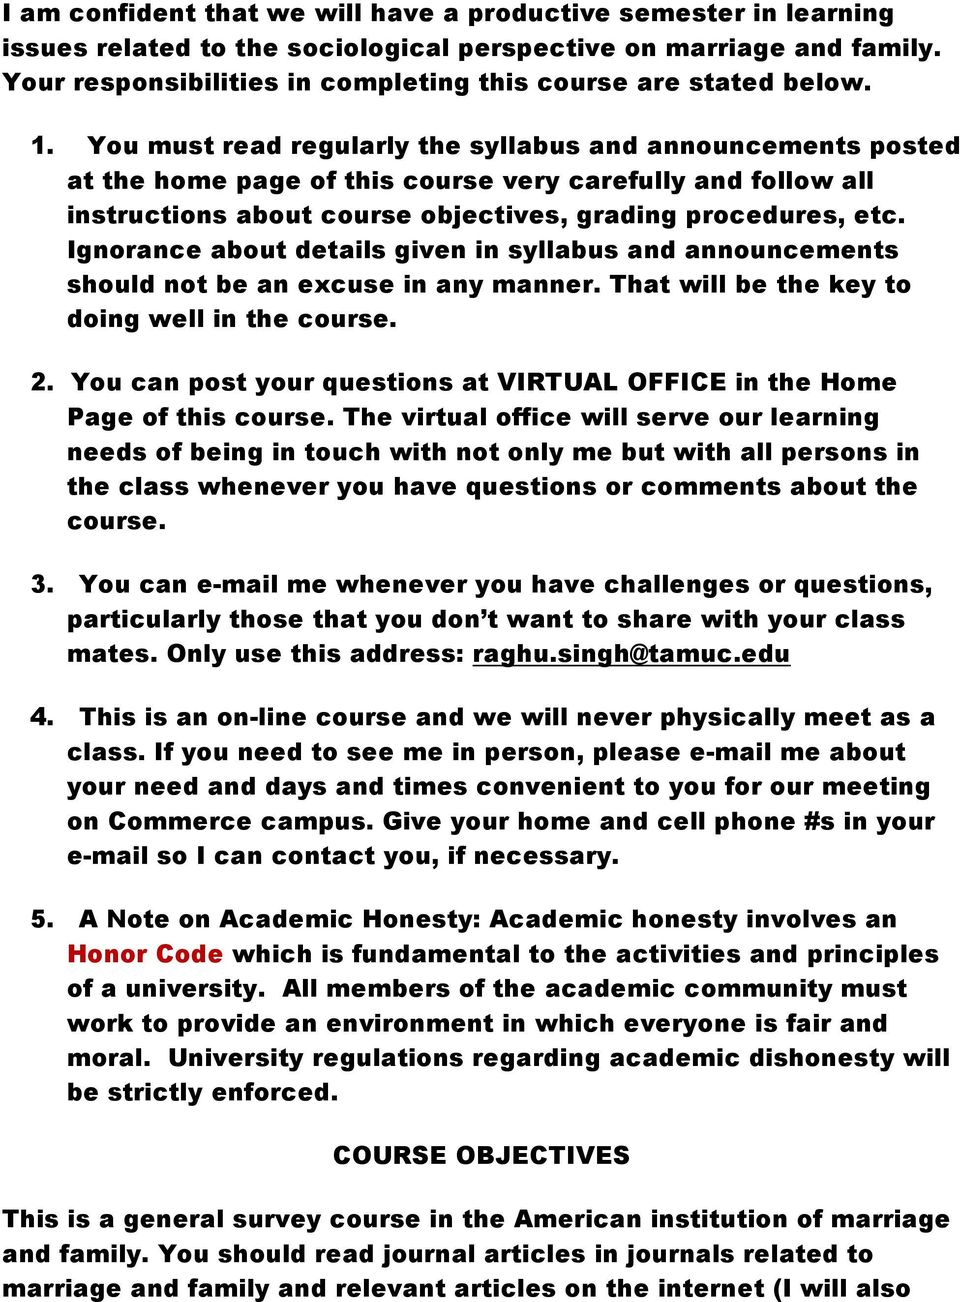 You must read regularly the syllabus and announcements posted at the home page of this course very carefully and follow all instructions about course objectives, grading procedures, etc.